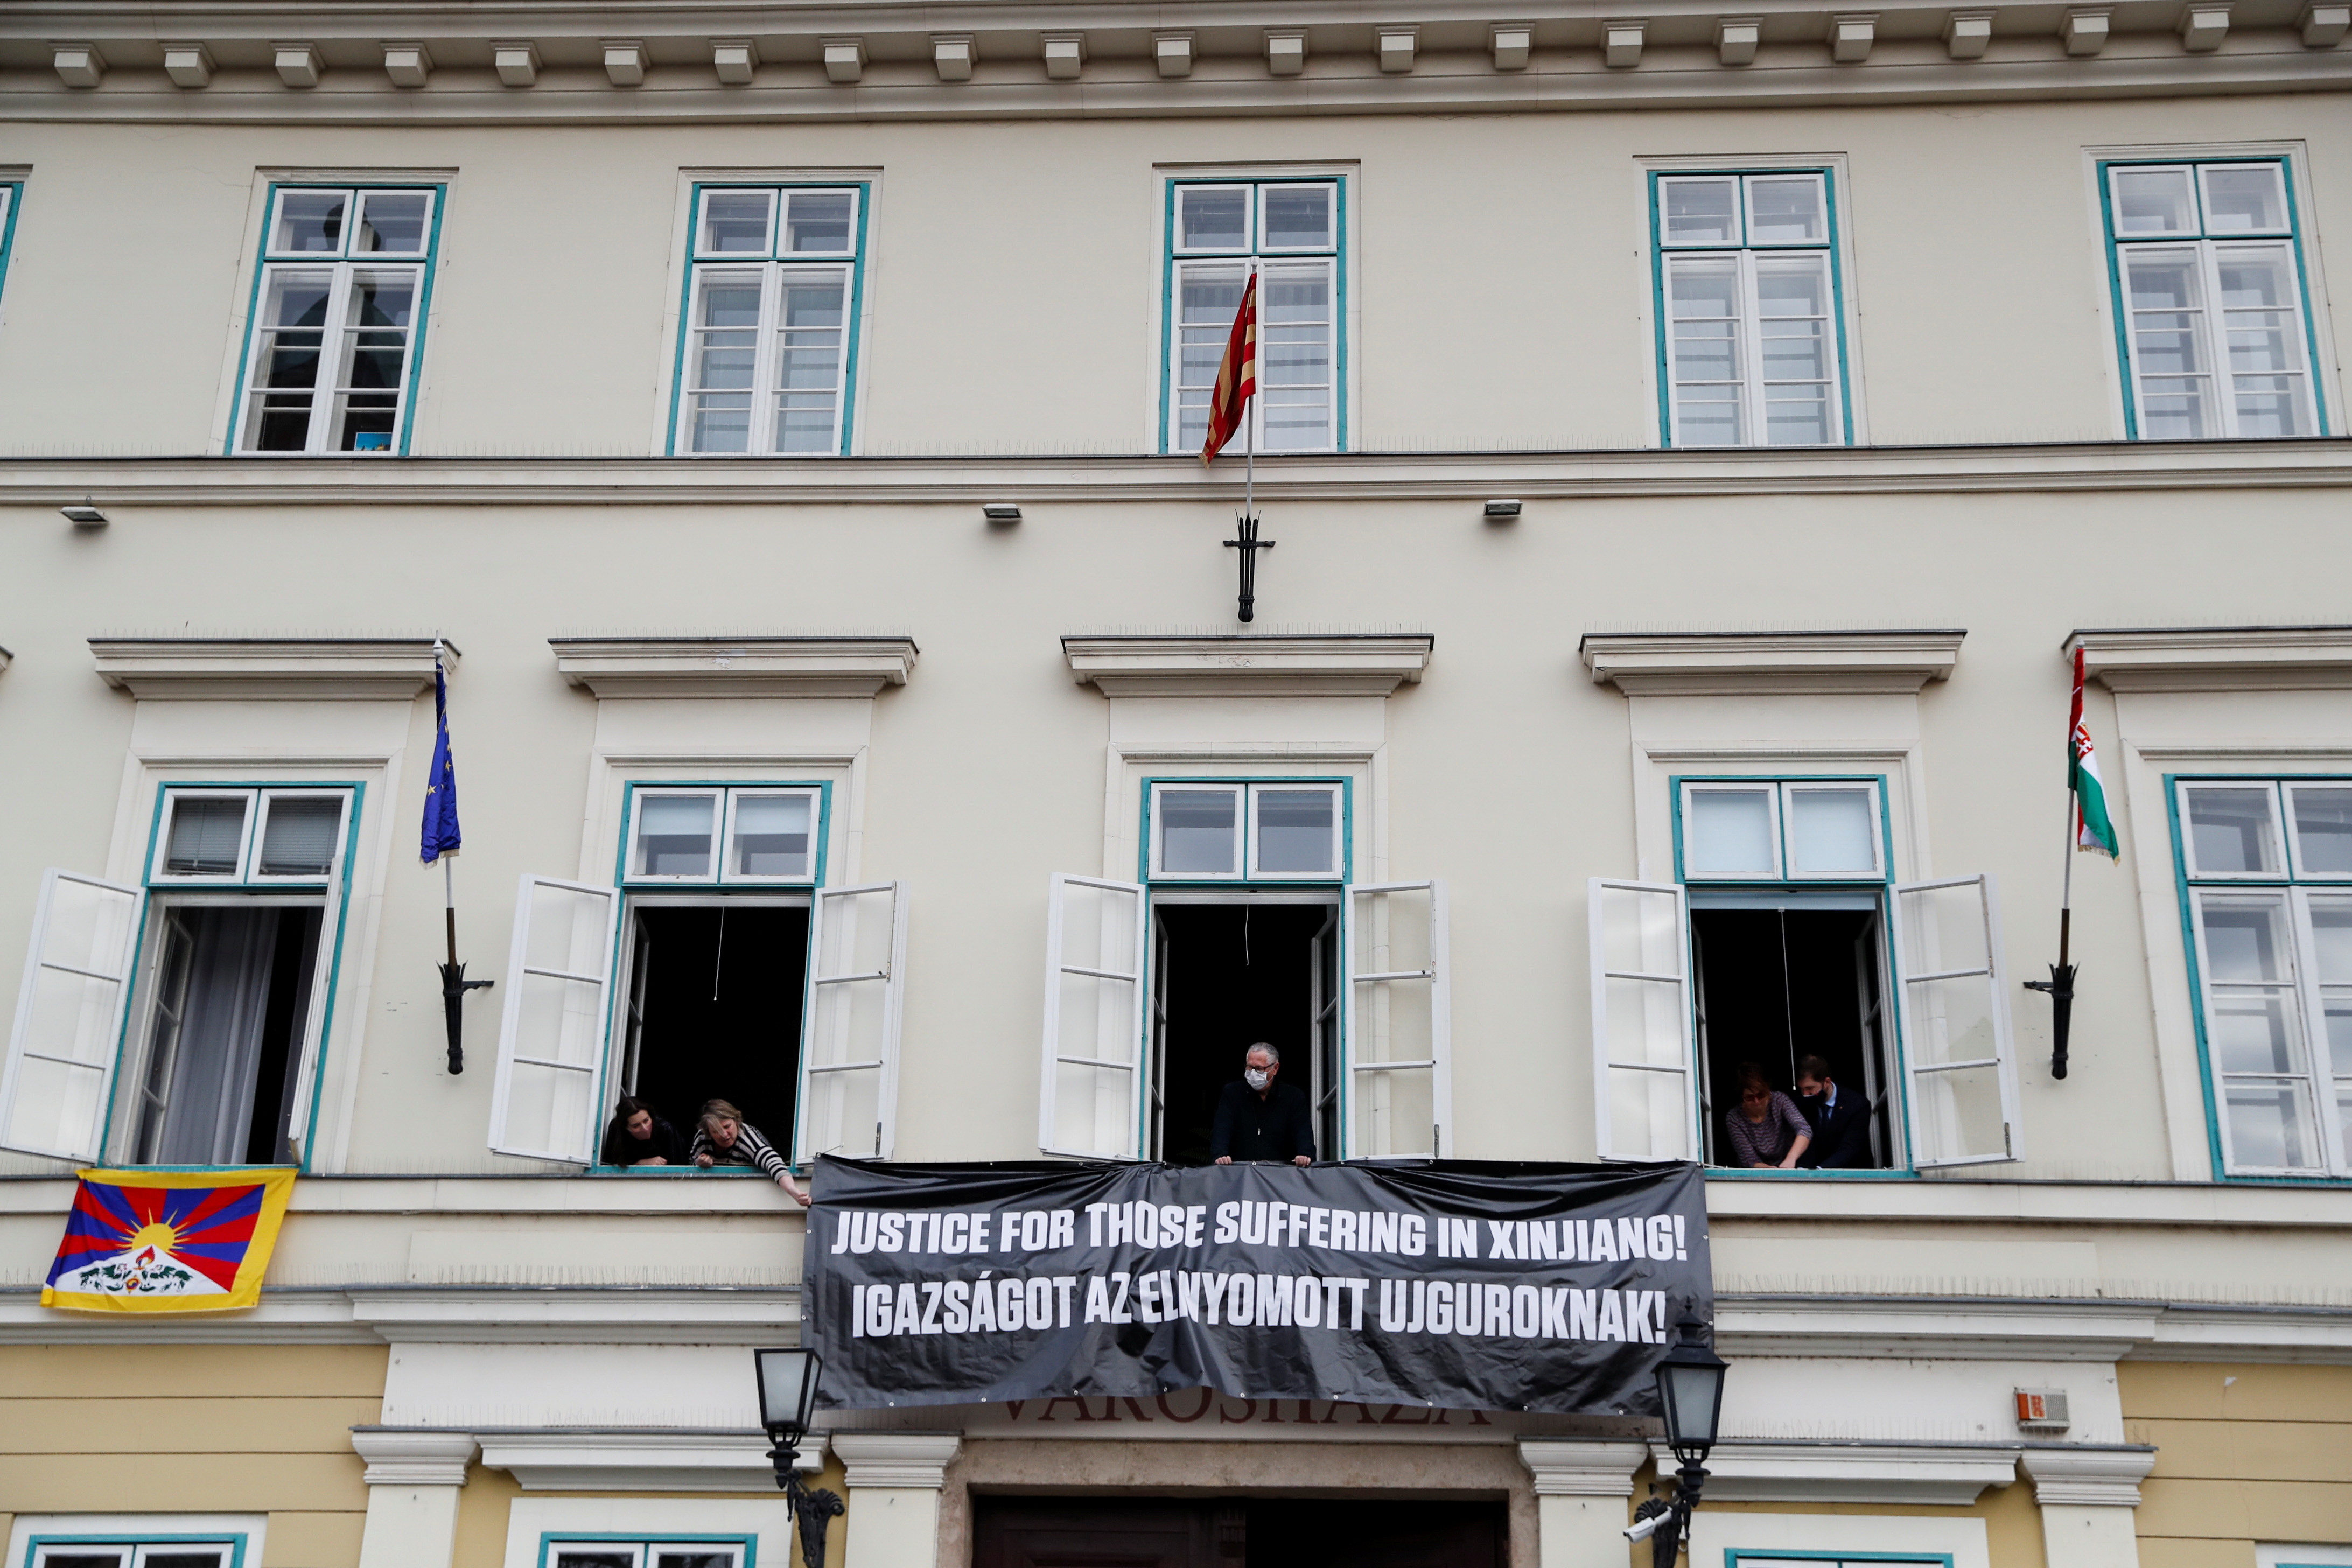 Hungarian opposition members hang a banner outside the District Mayor's Office building during the visit of Chinese Defence Minister Wei Fenghe, to protest over China's treatment of Uighurs, in Budapest, Hungary, March 25, 2021. REUTERS/Bernadett Szabo